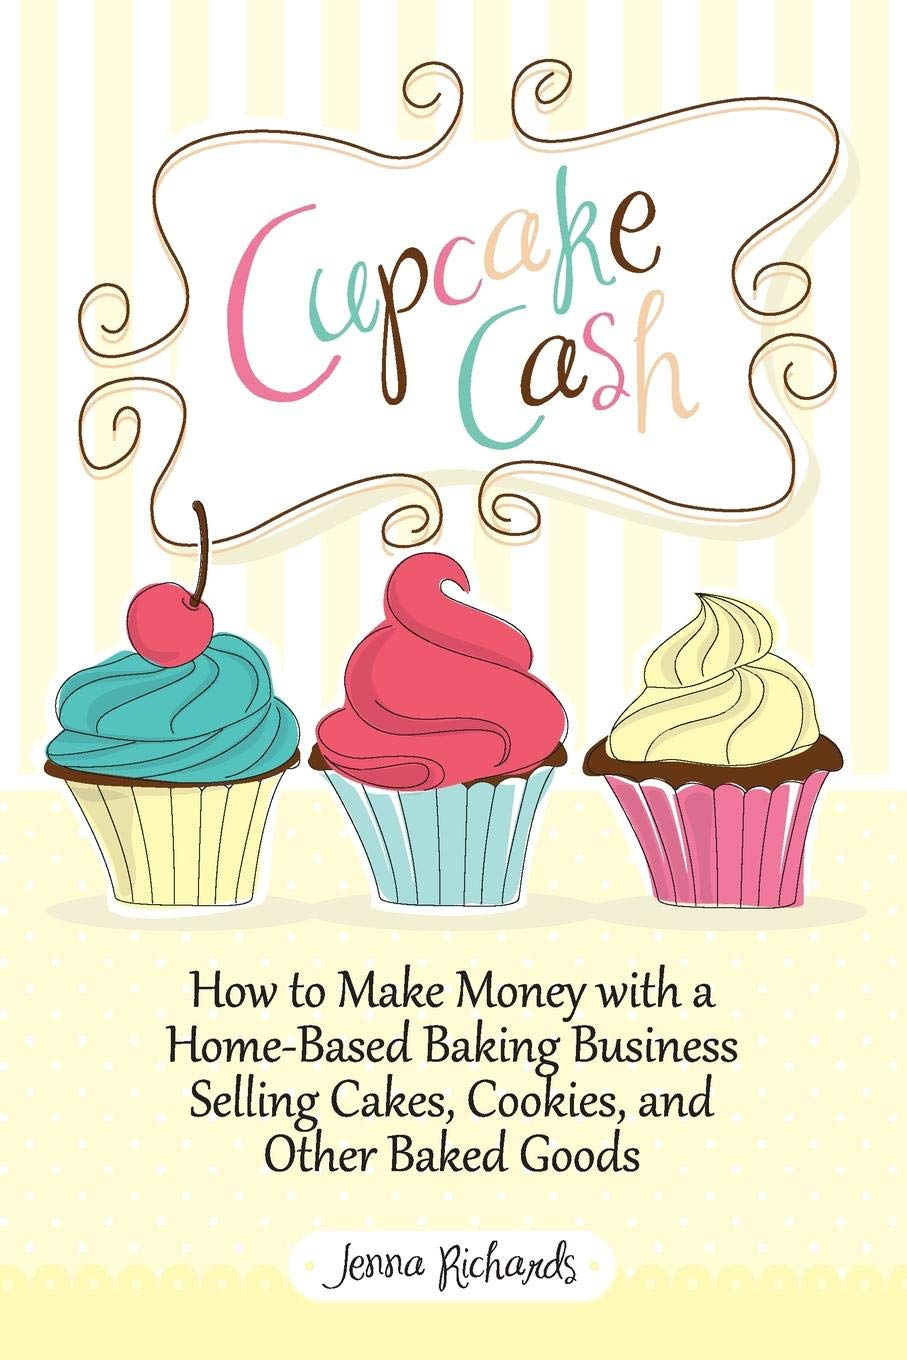 Cupcake Cash - How to Make Money with a Home-Based Baking Business